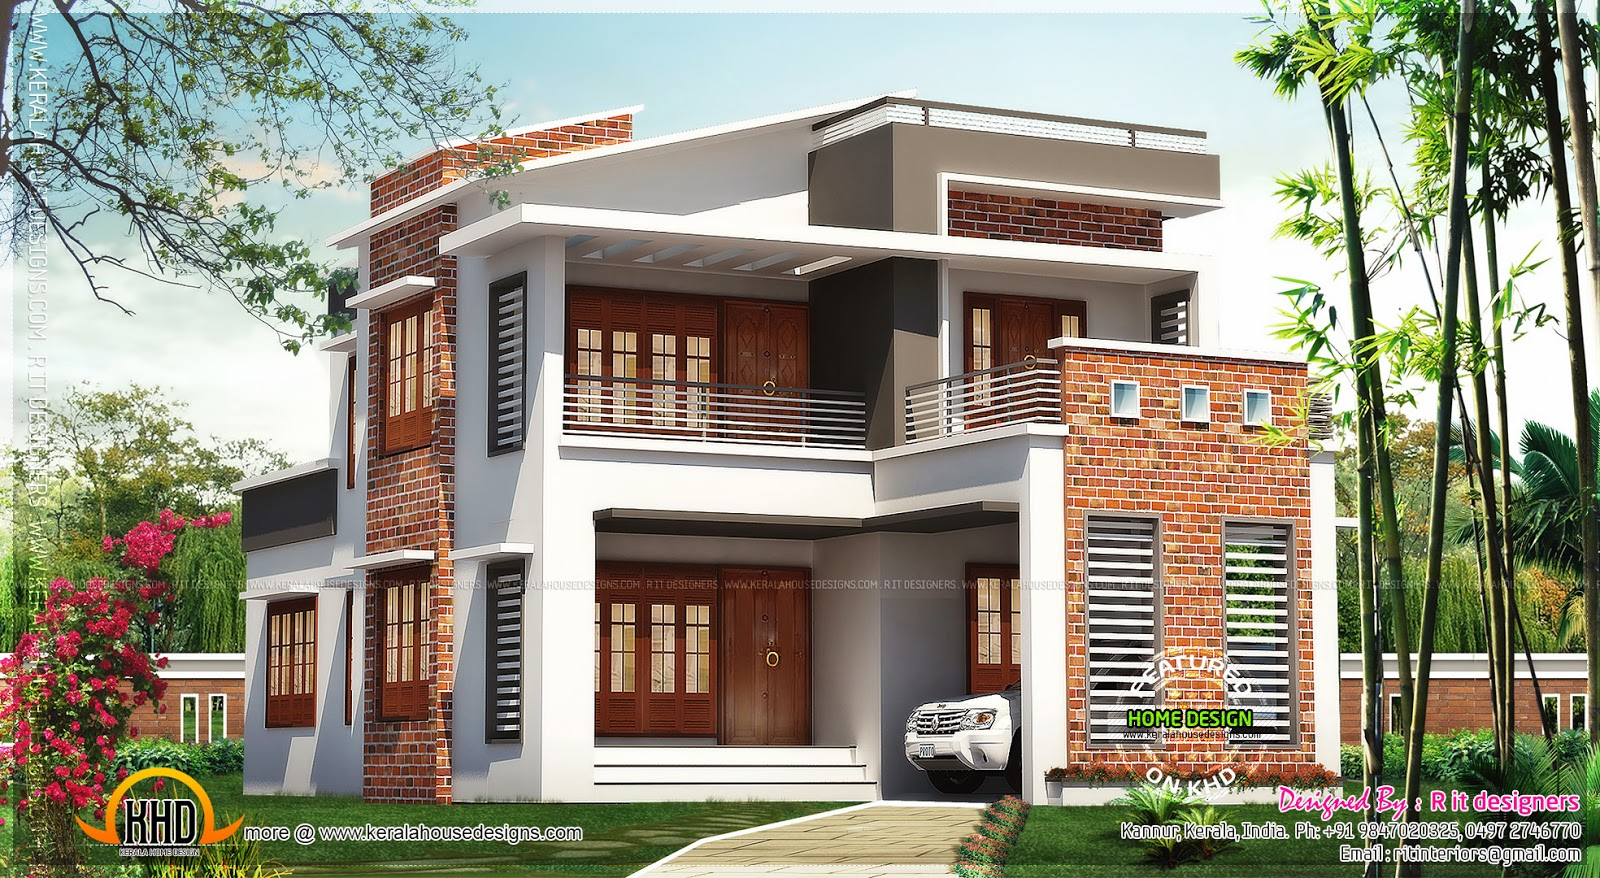 Brick mix house exterior design kerala home design and floor plans Indian small house exterior design